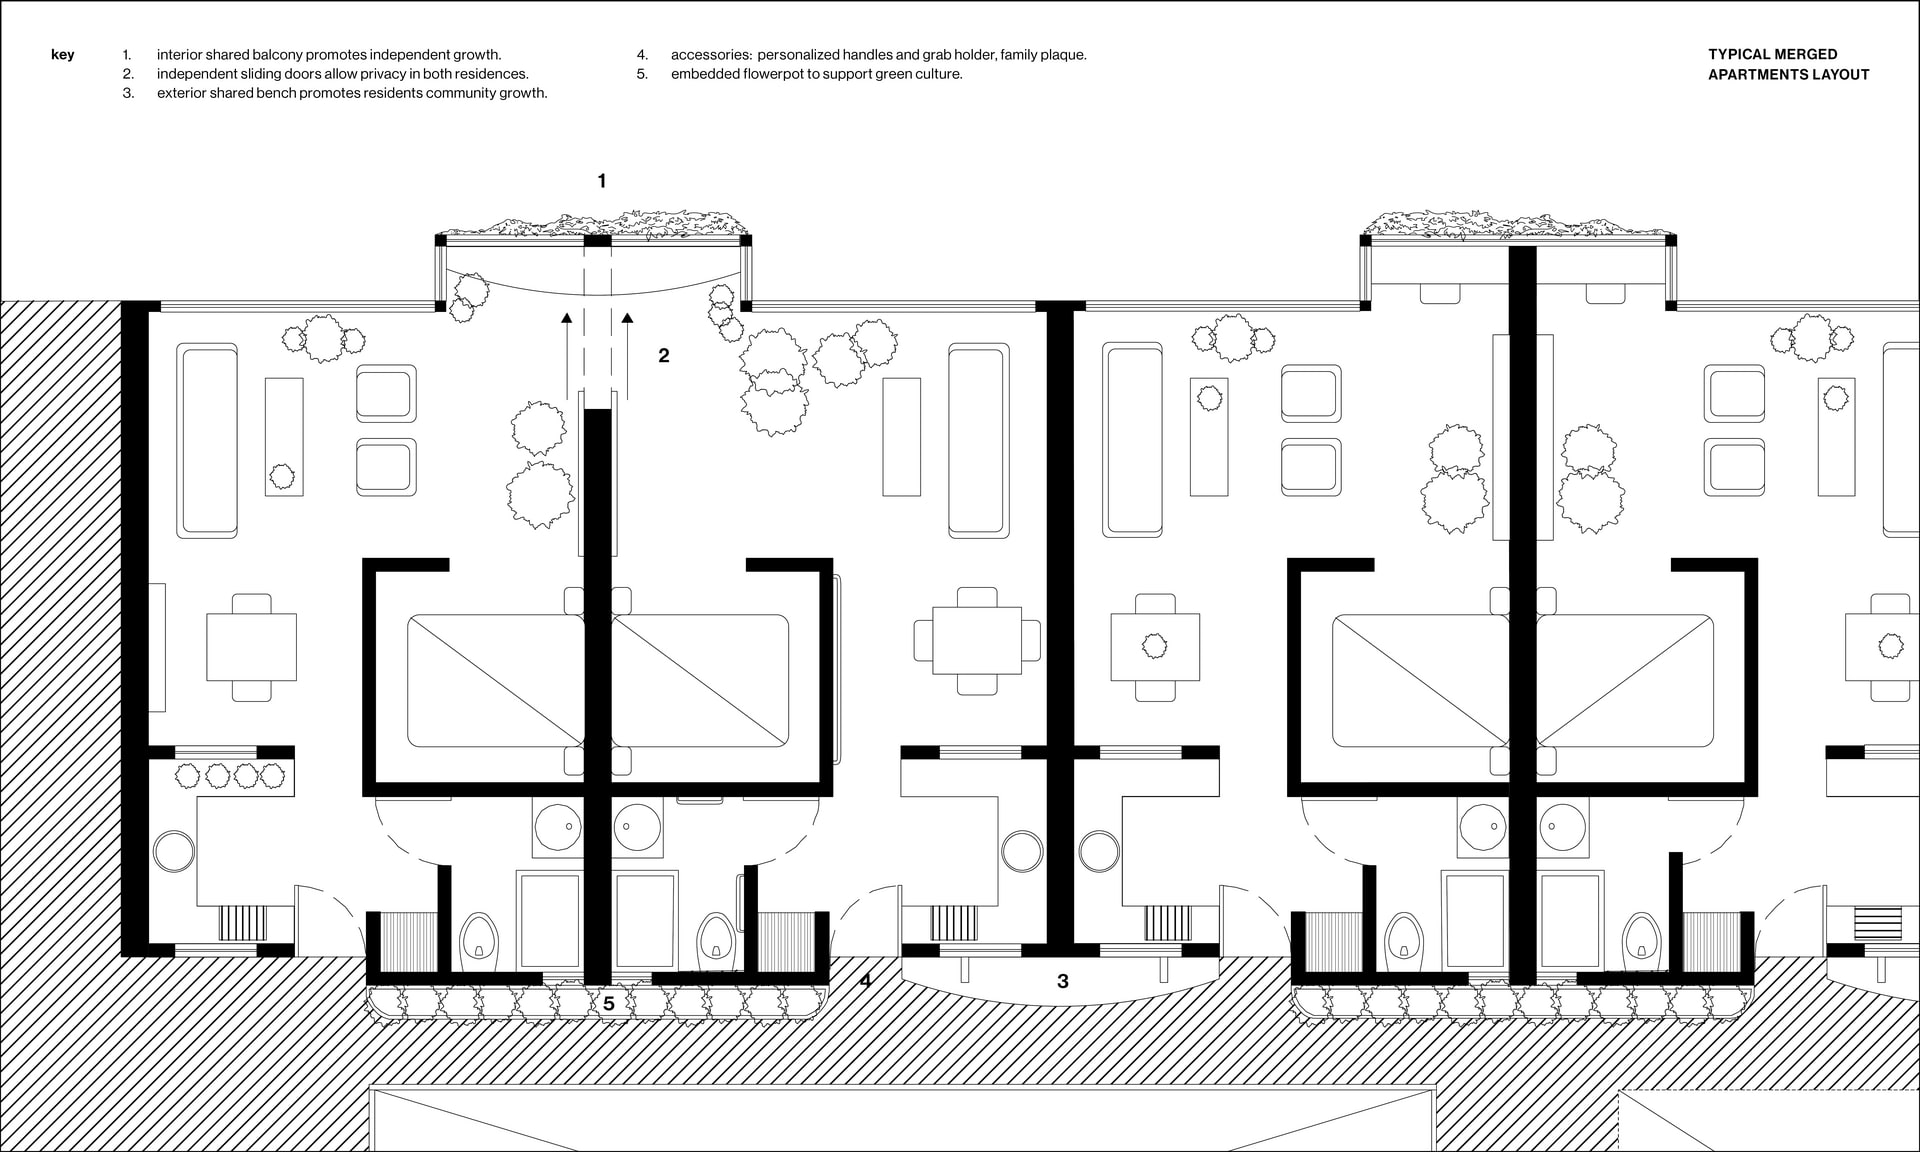 Crescent House Apartments: Typical Merged Layout - Digital drawing